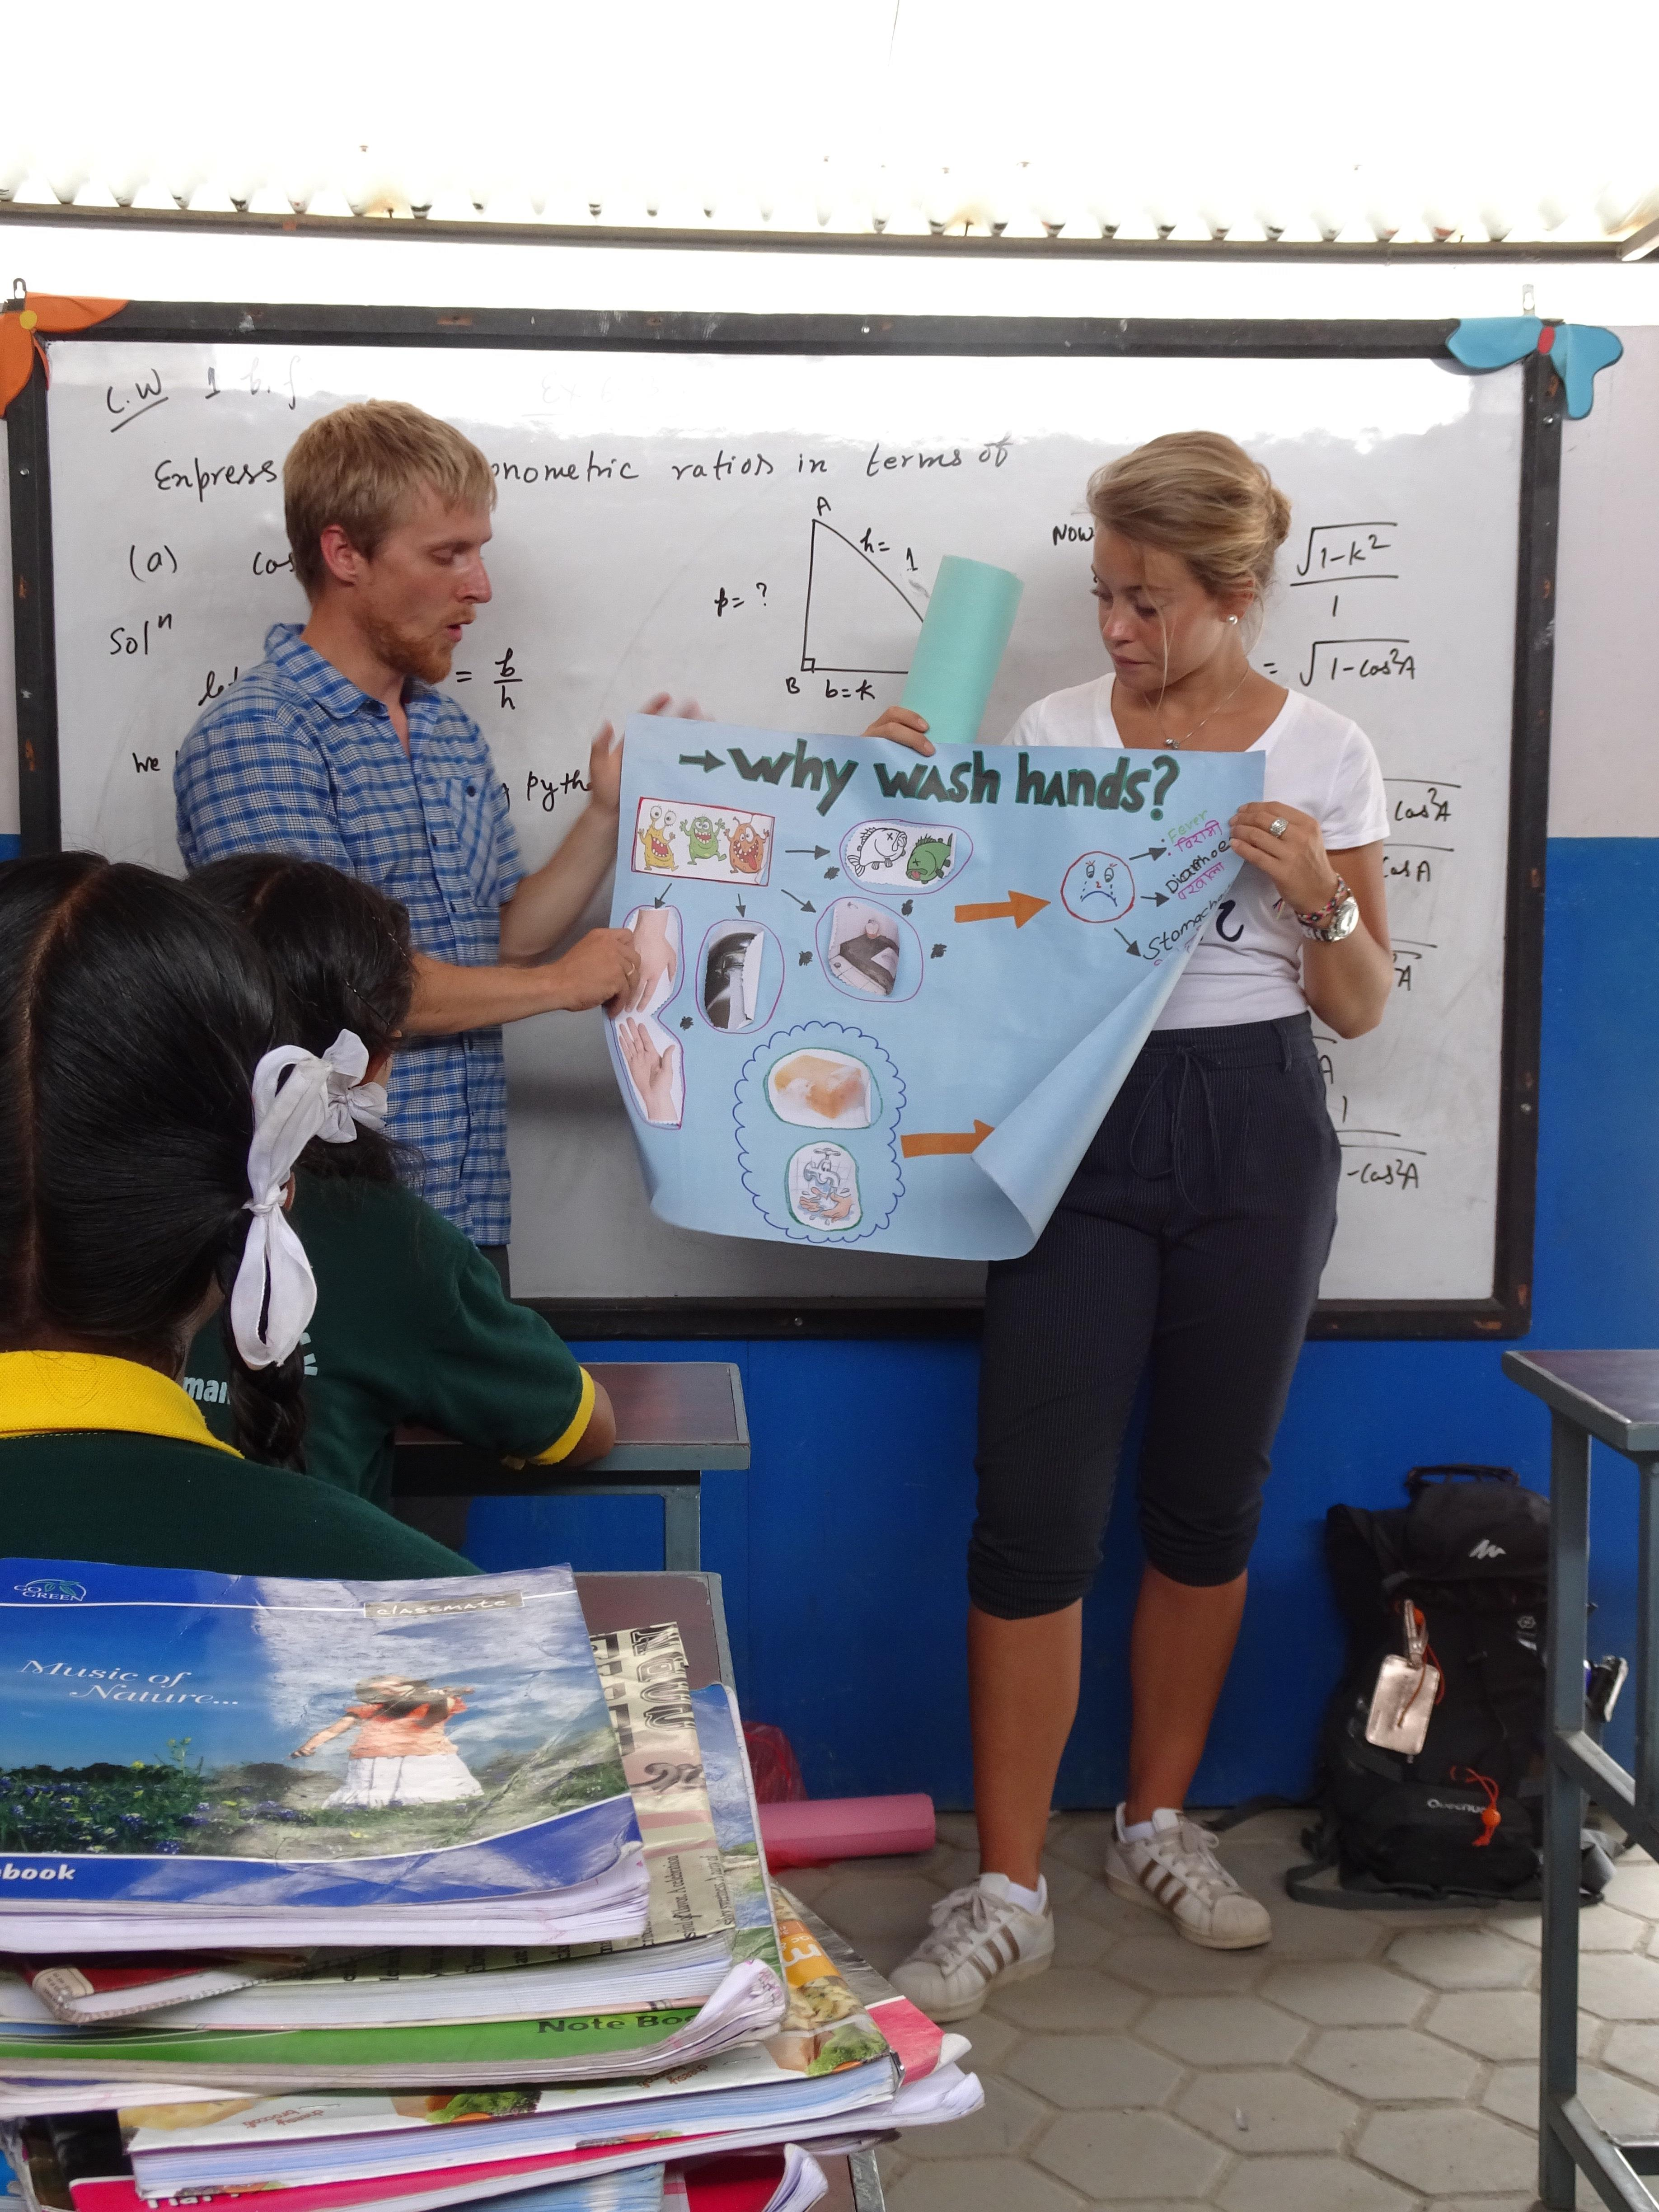 Sherilyn and Melany teaching children about health and hygiene